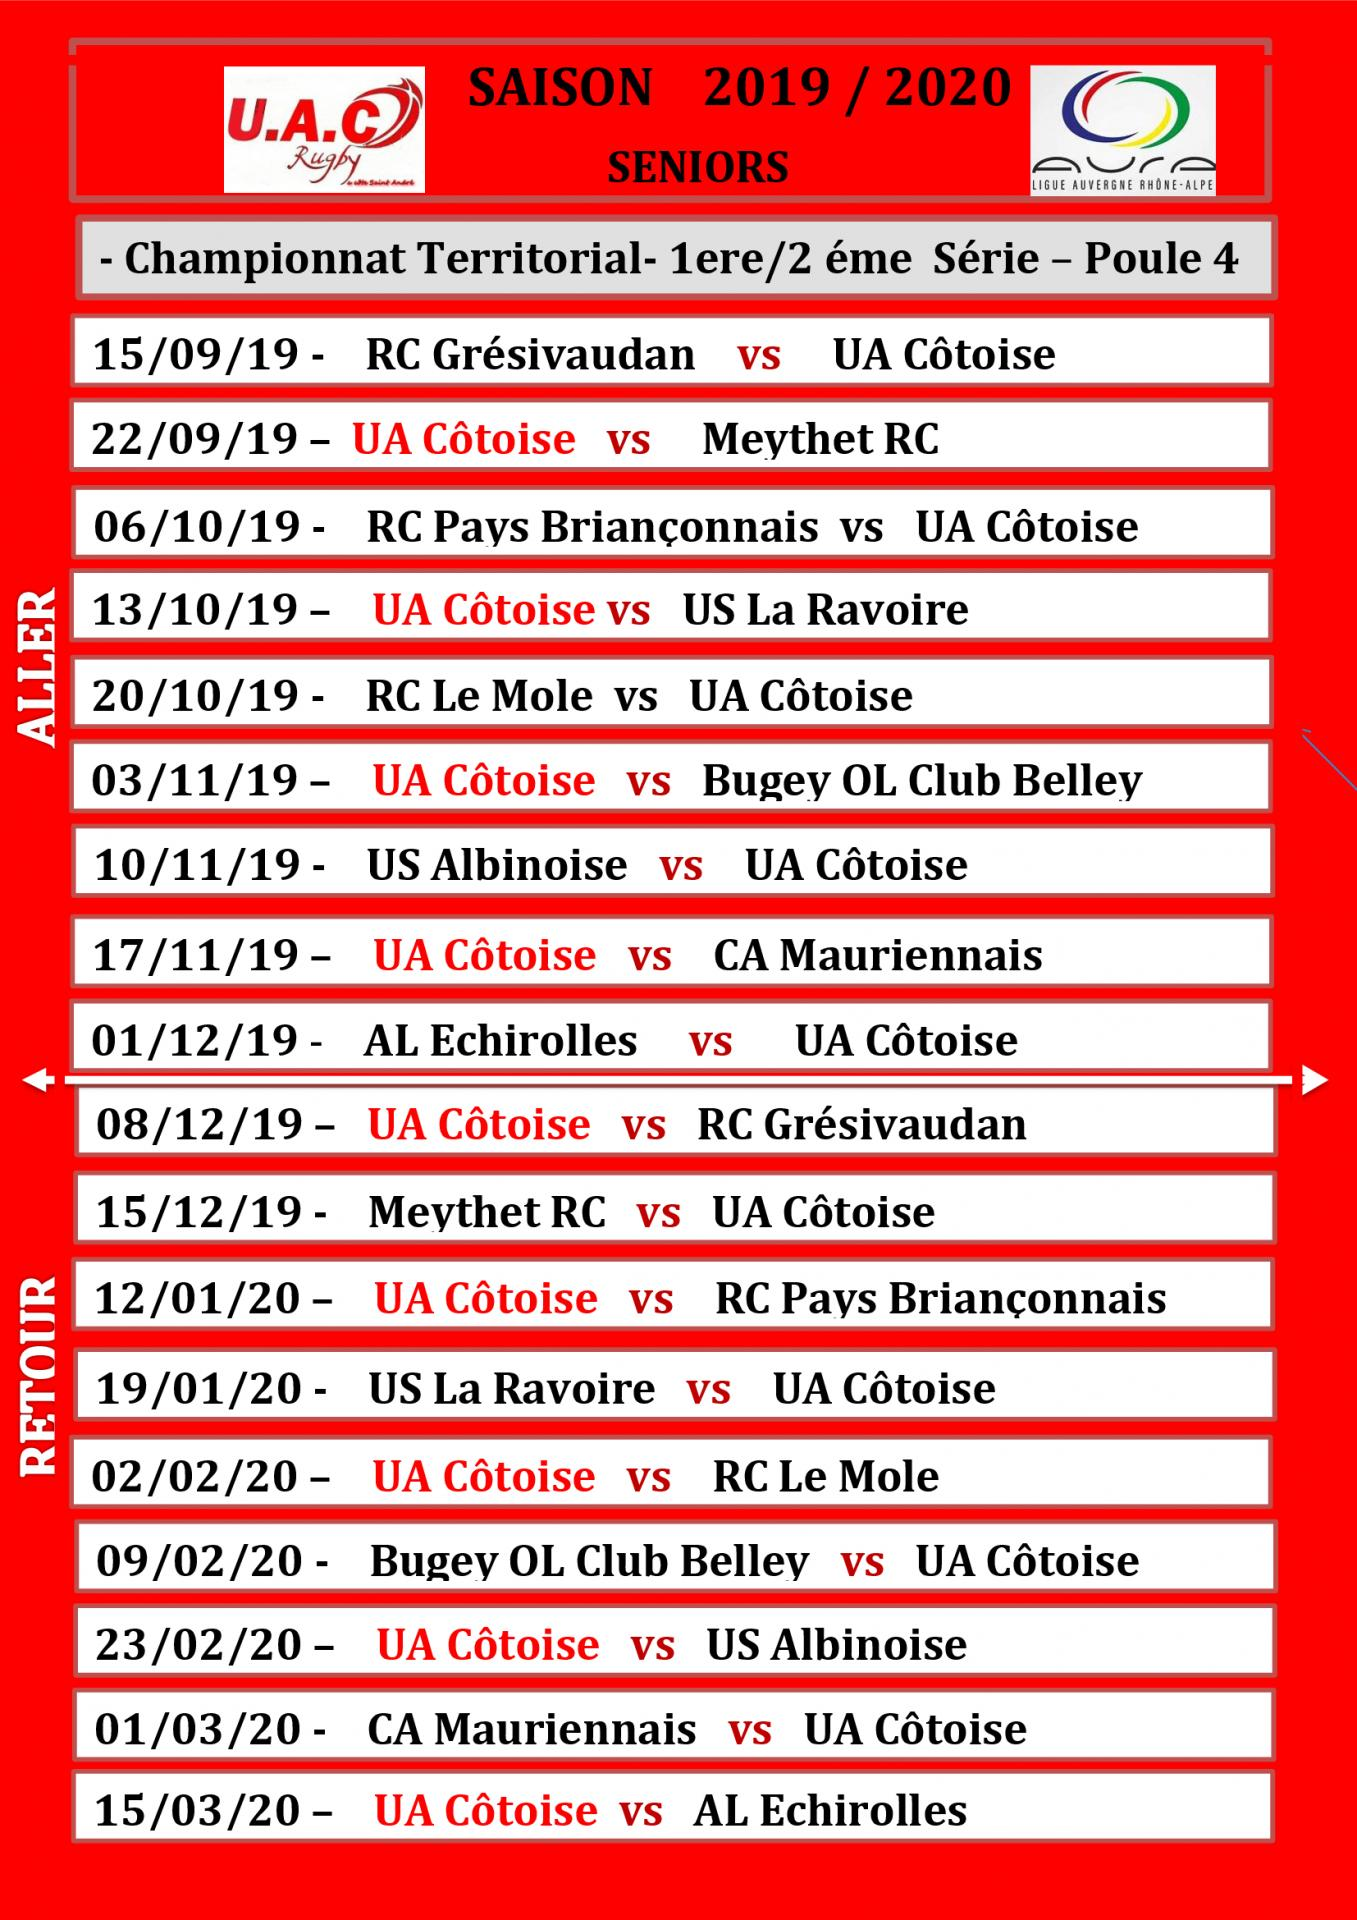 Serie Us Calendrier.Serie Us Calendrier